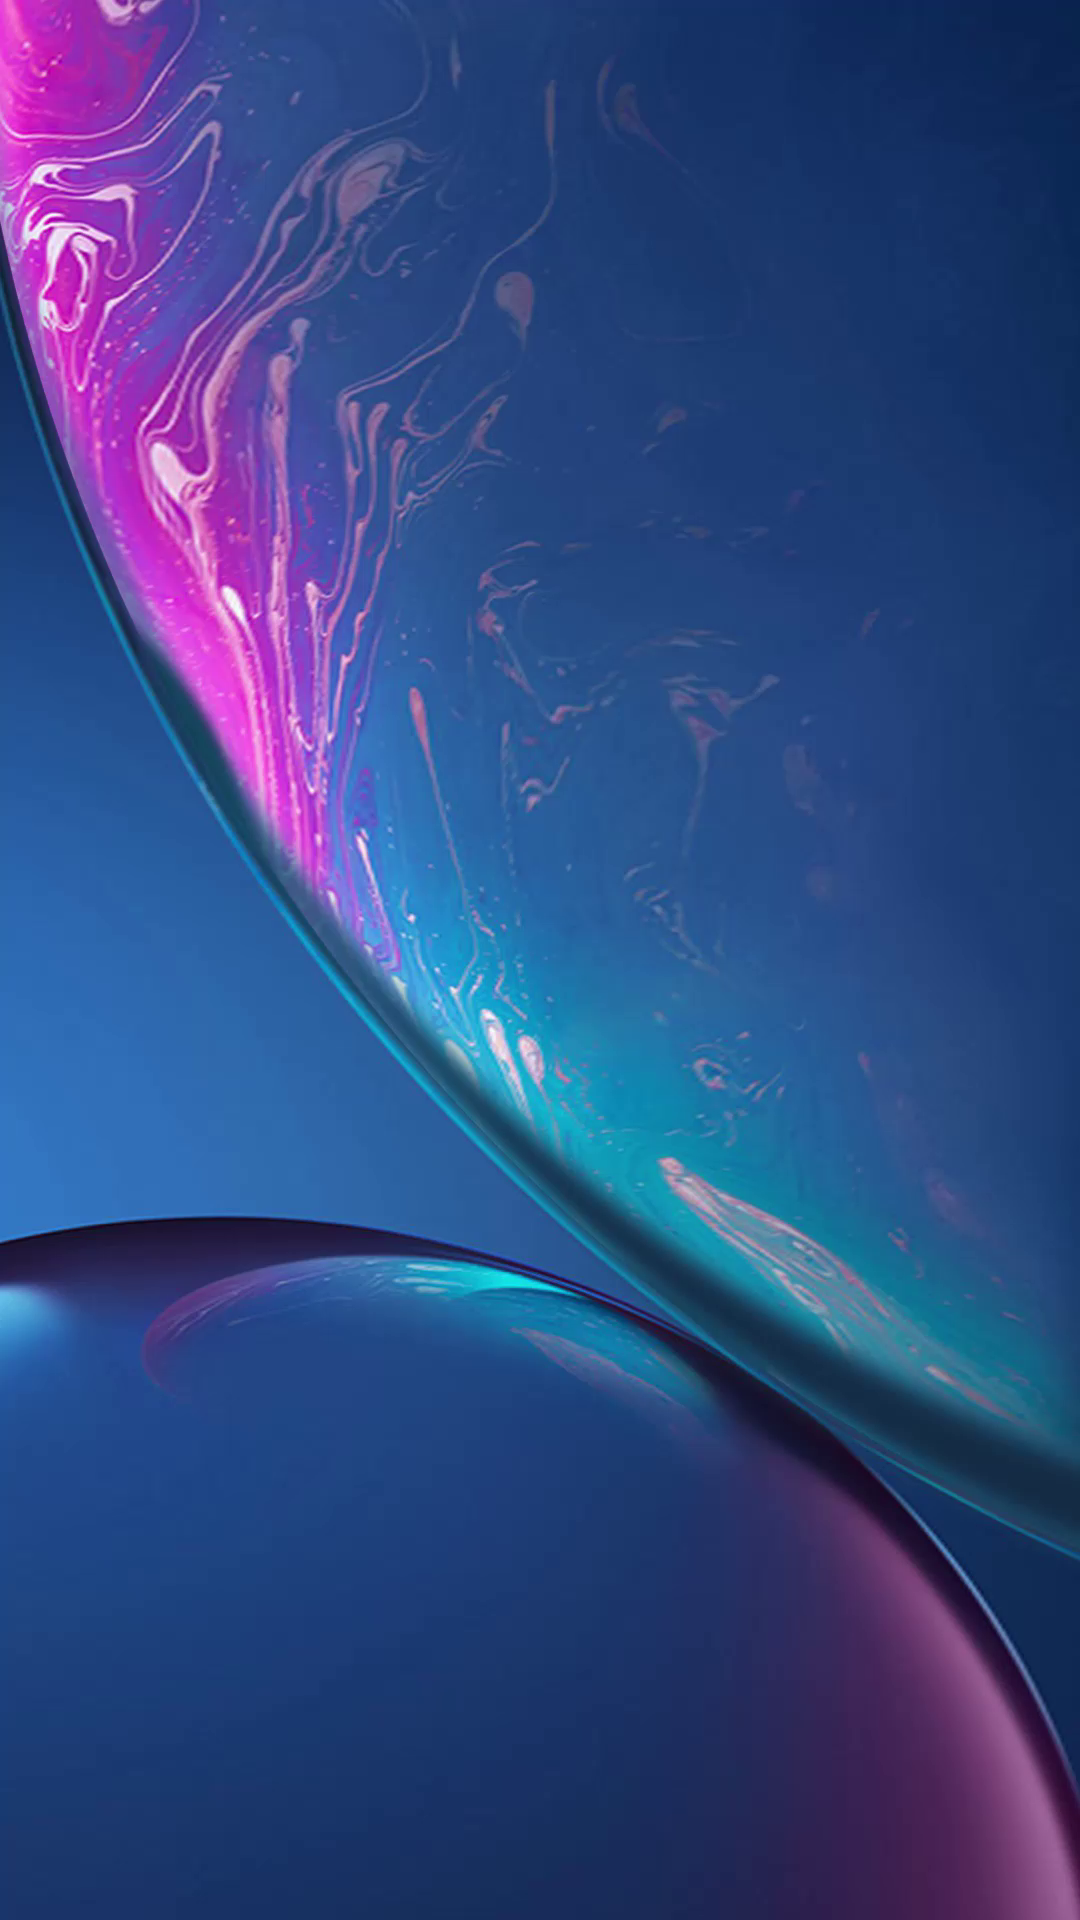 iPhone XR Live Wallpaper